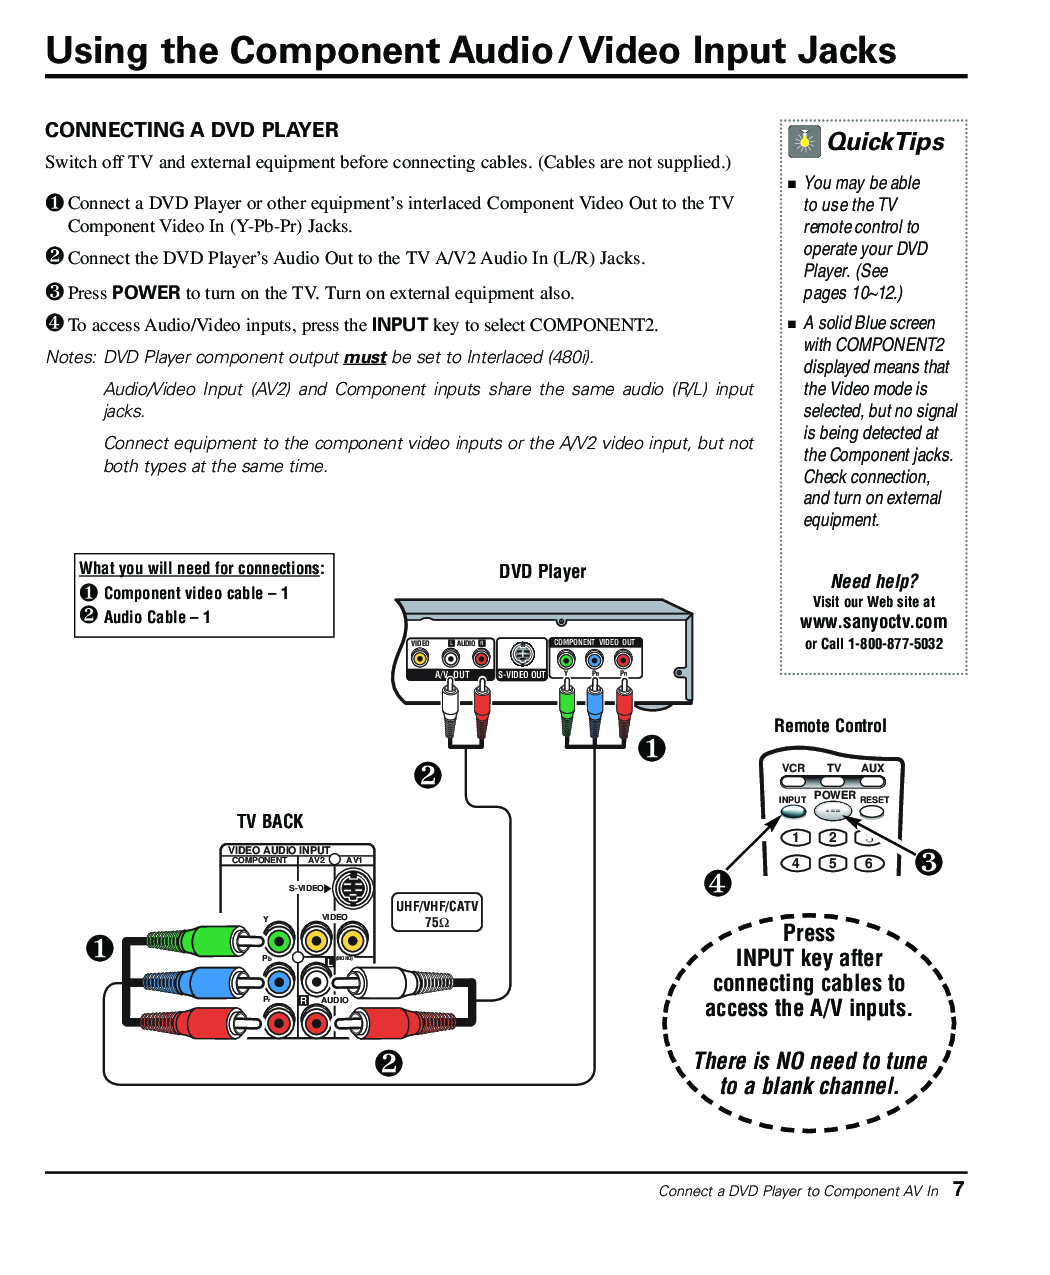 dsr 530 user manual and questions